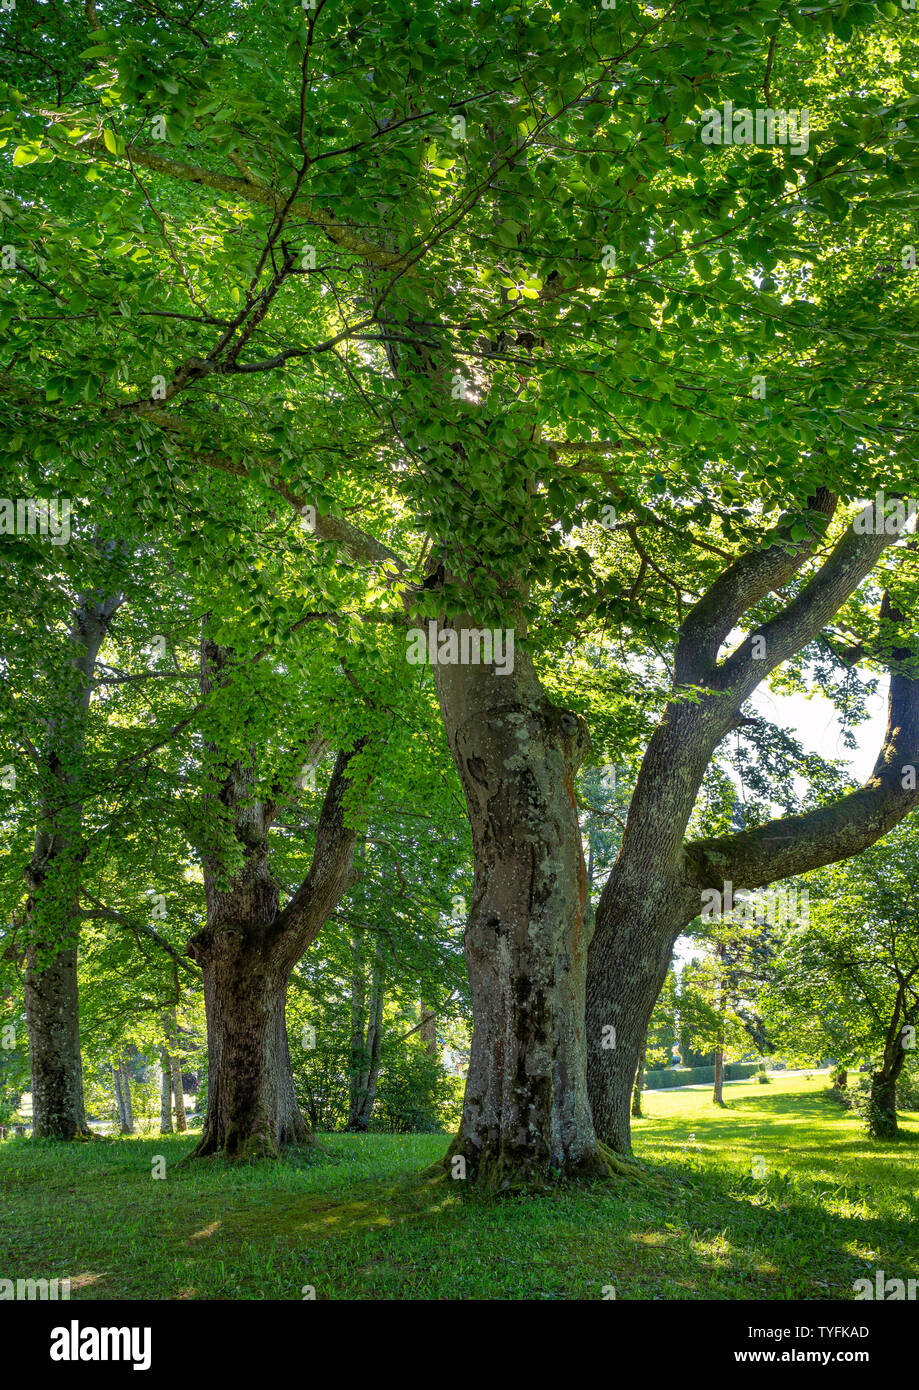 Large-leaved Linden (Tilia platyphyllos) in the park of Hoehenried, Bavaria, Germany, Europe Stock Photo